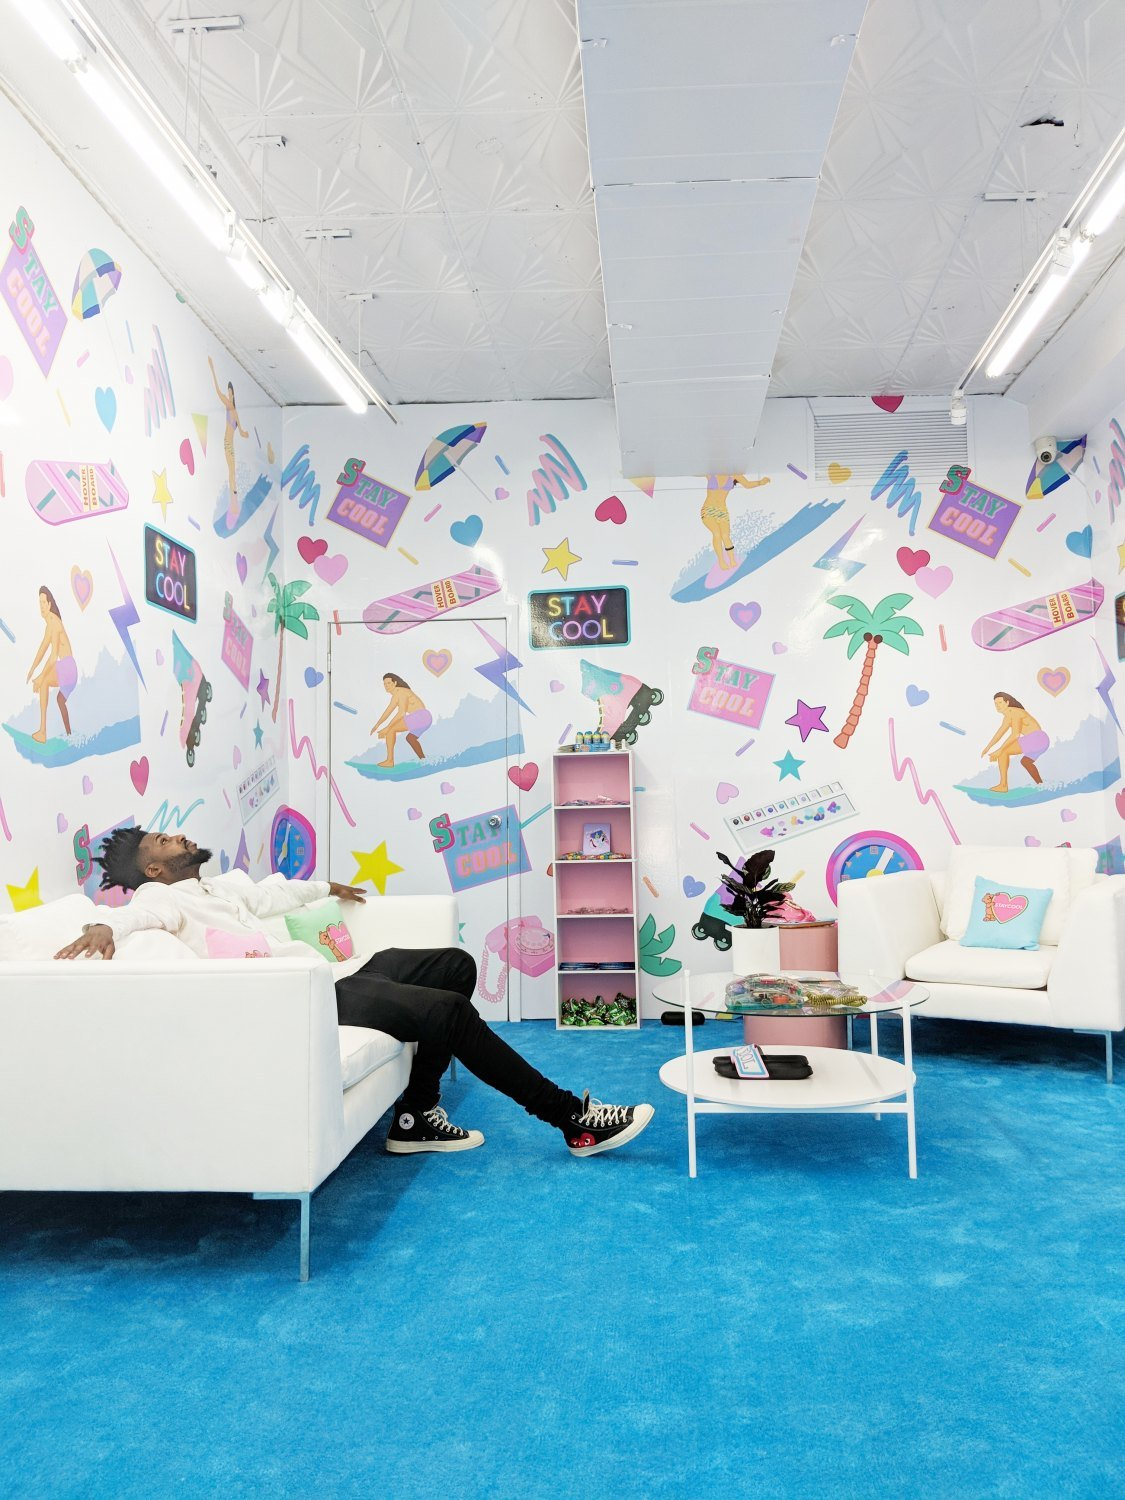 Pop Up Shop Ideas Example Photo #2: The Stay Cool NYC Pop Up @ 208 Bowery